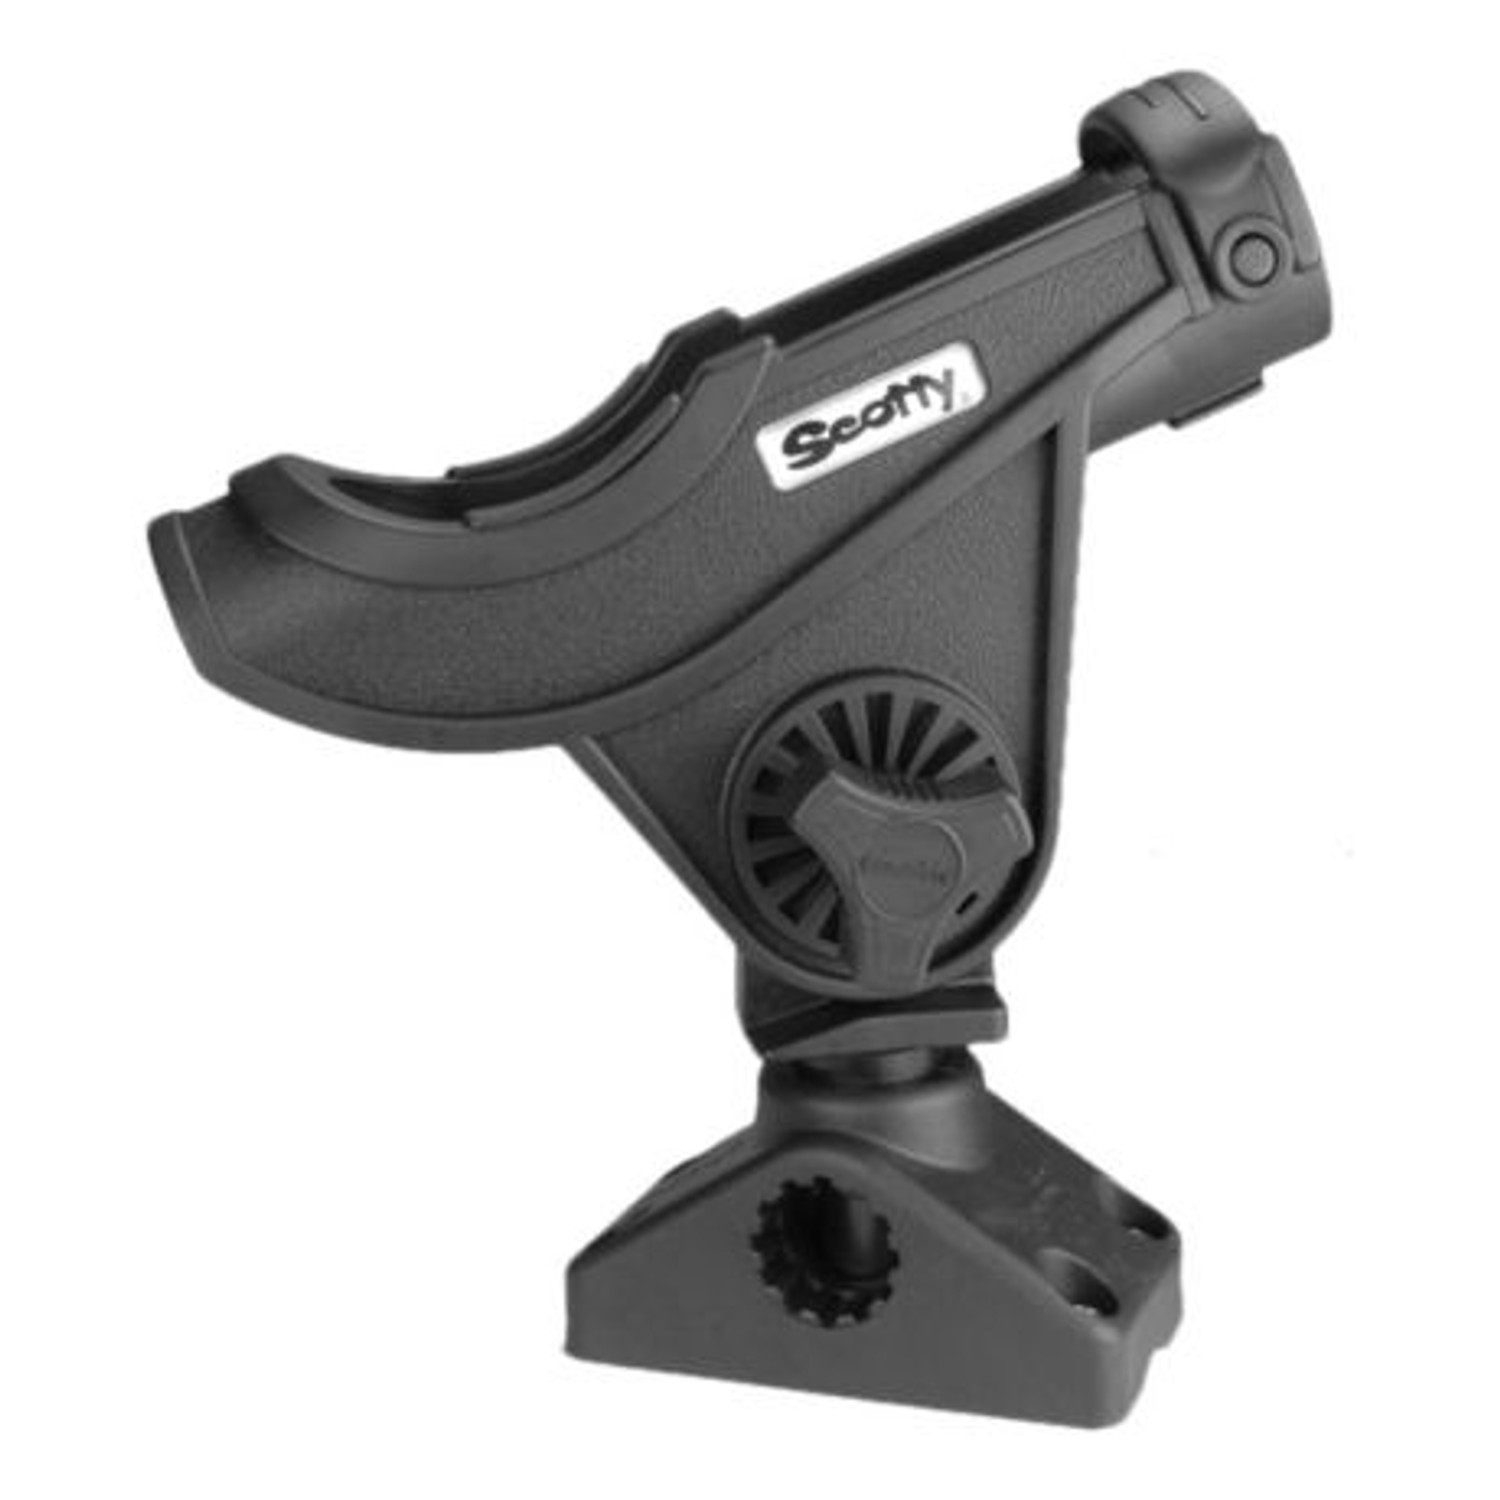 Baitcaster with Side/Deck Mount